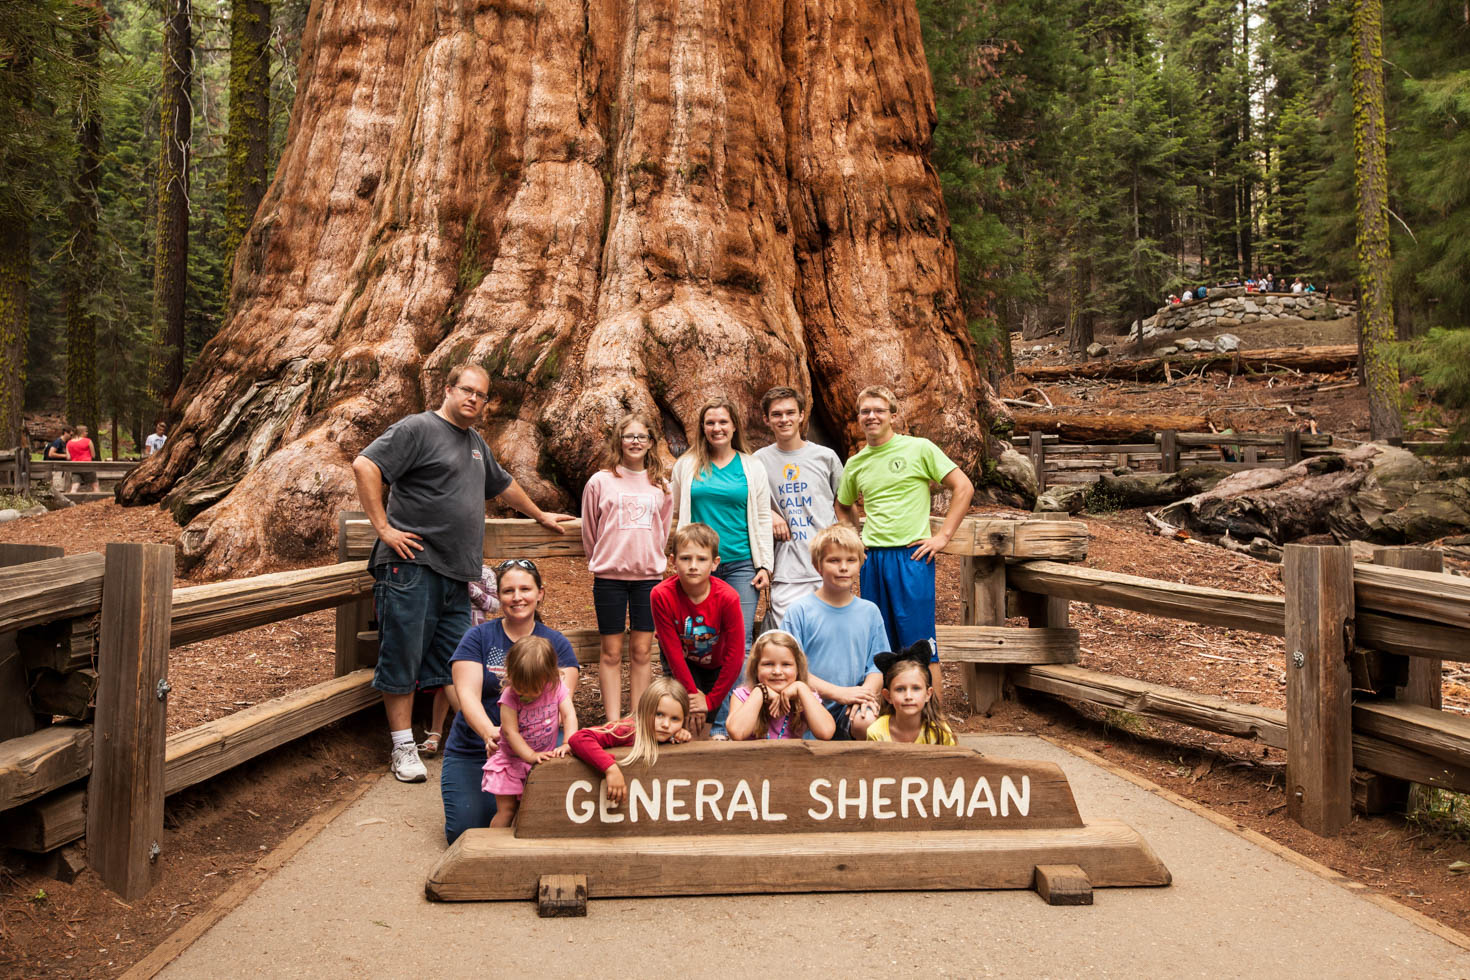 General Sherman Tree, Sequoia National Park, CA #vezzaniphotography